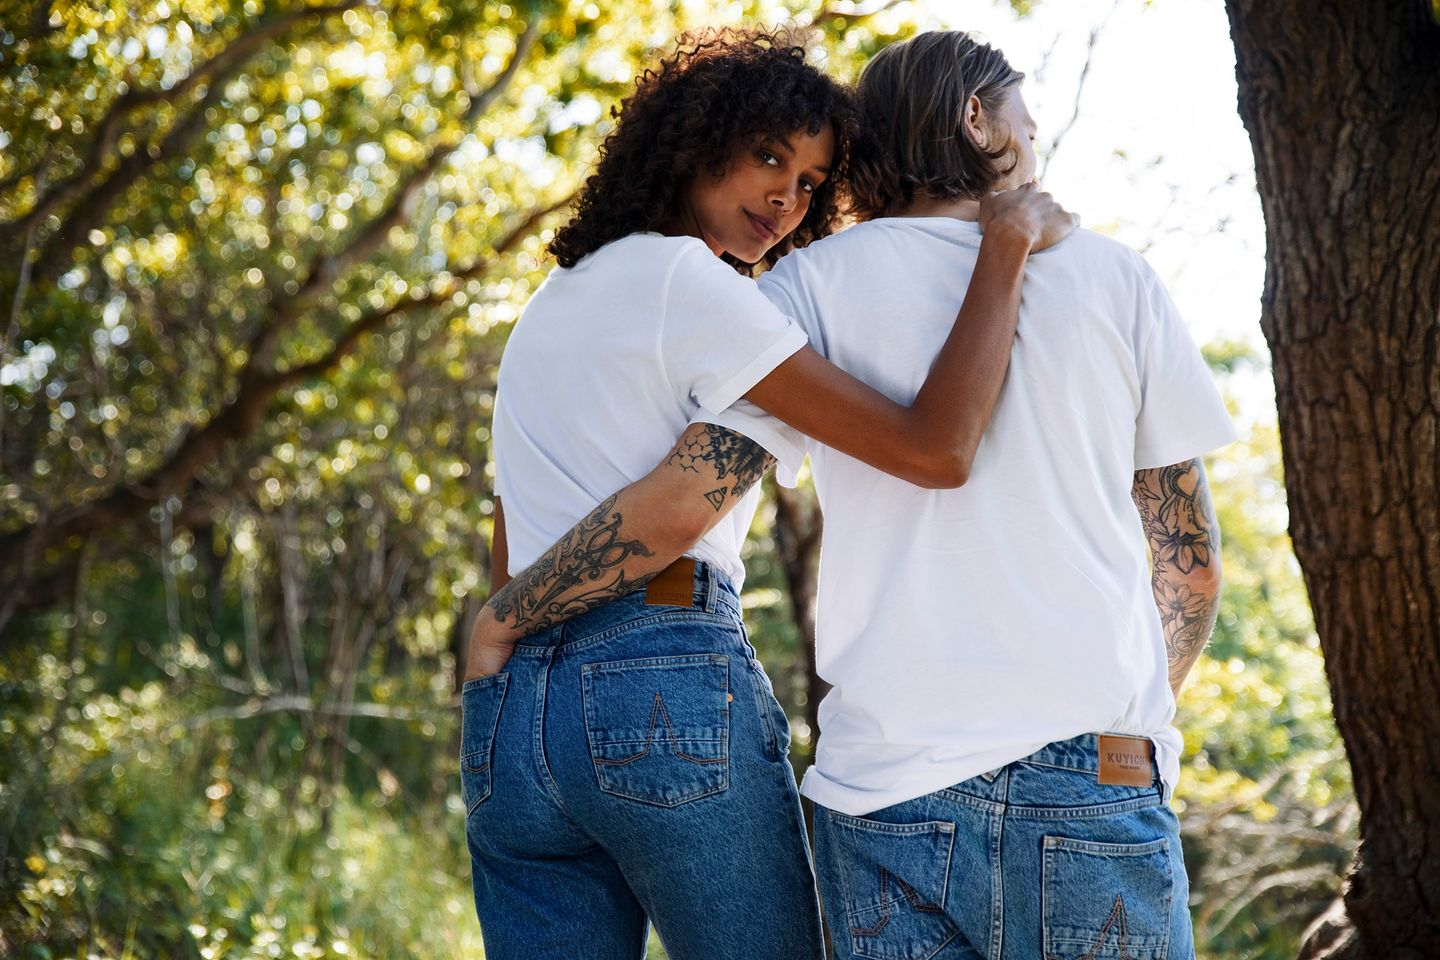 couple in jeans